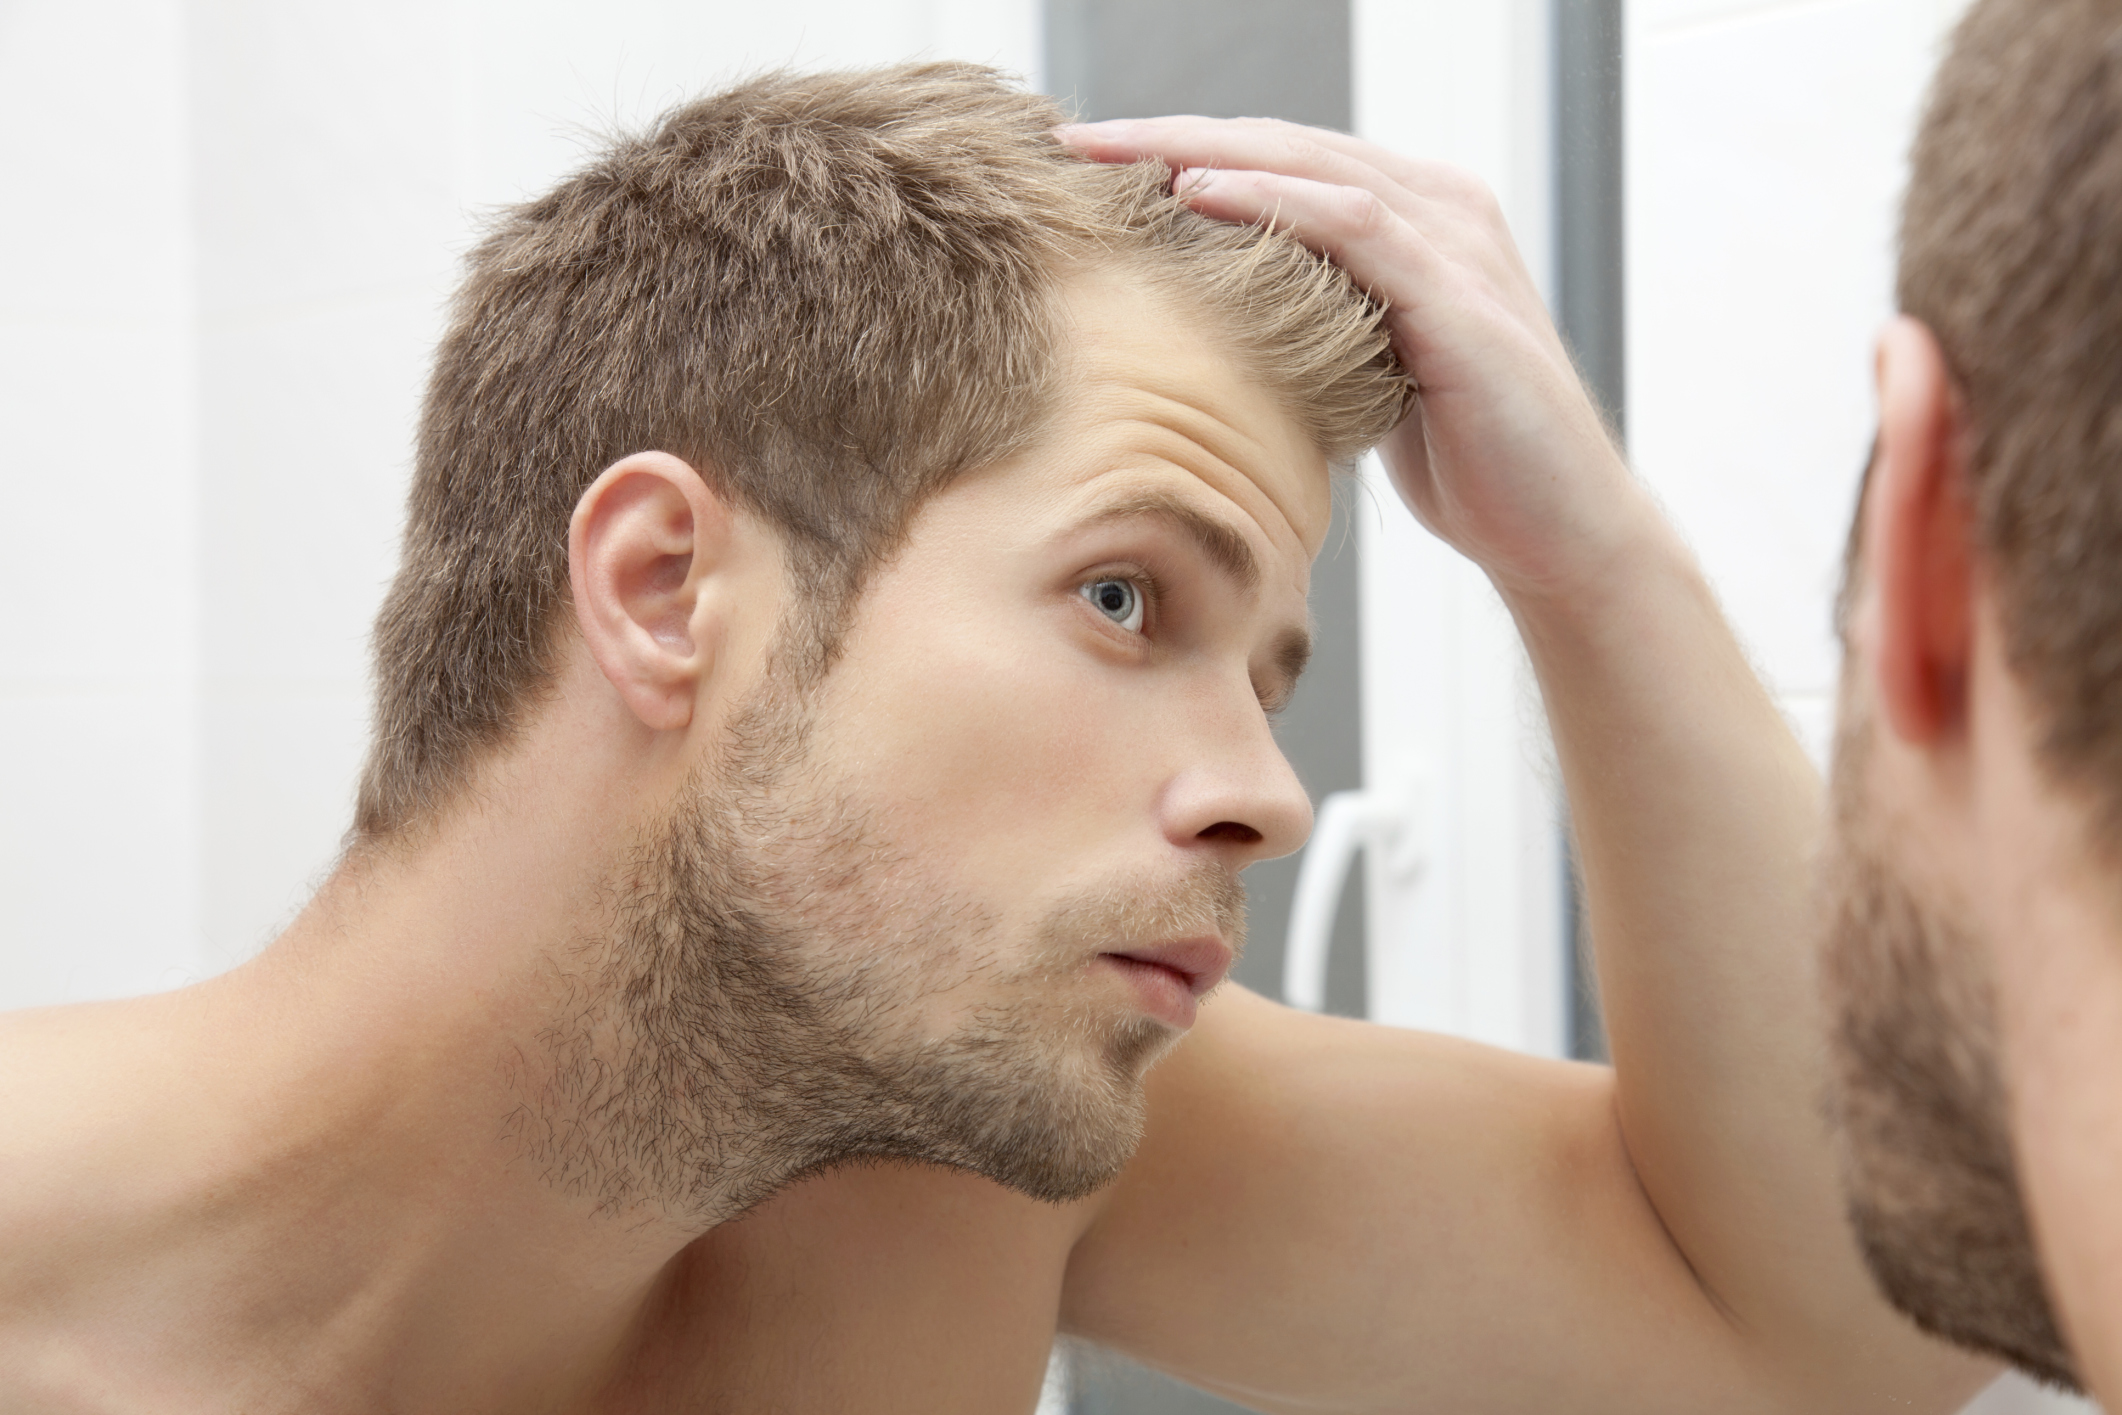 How to stop my hairline from receding